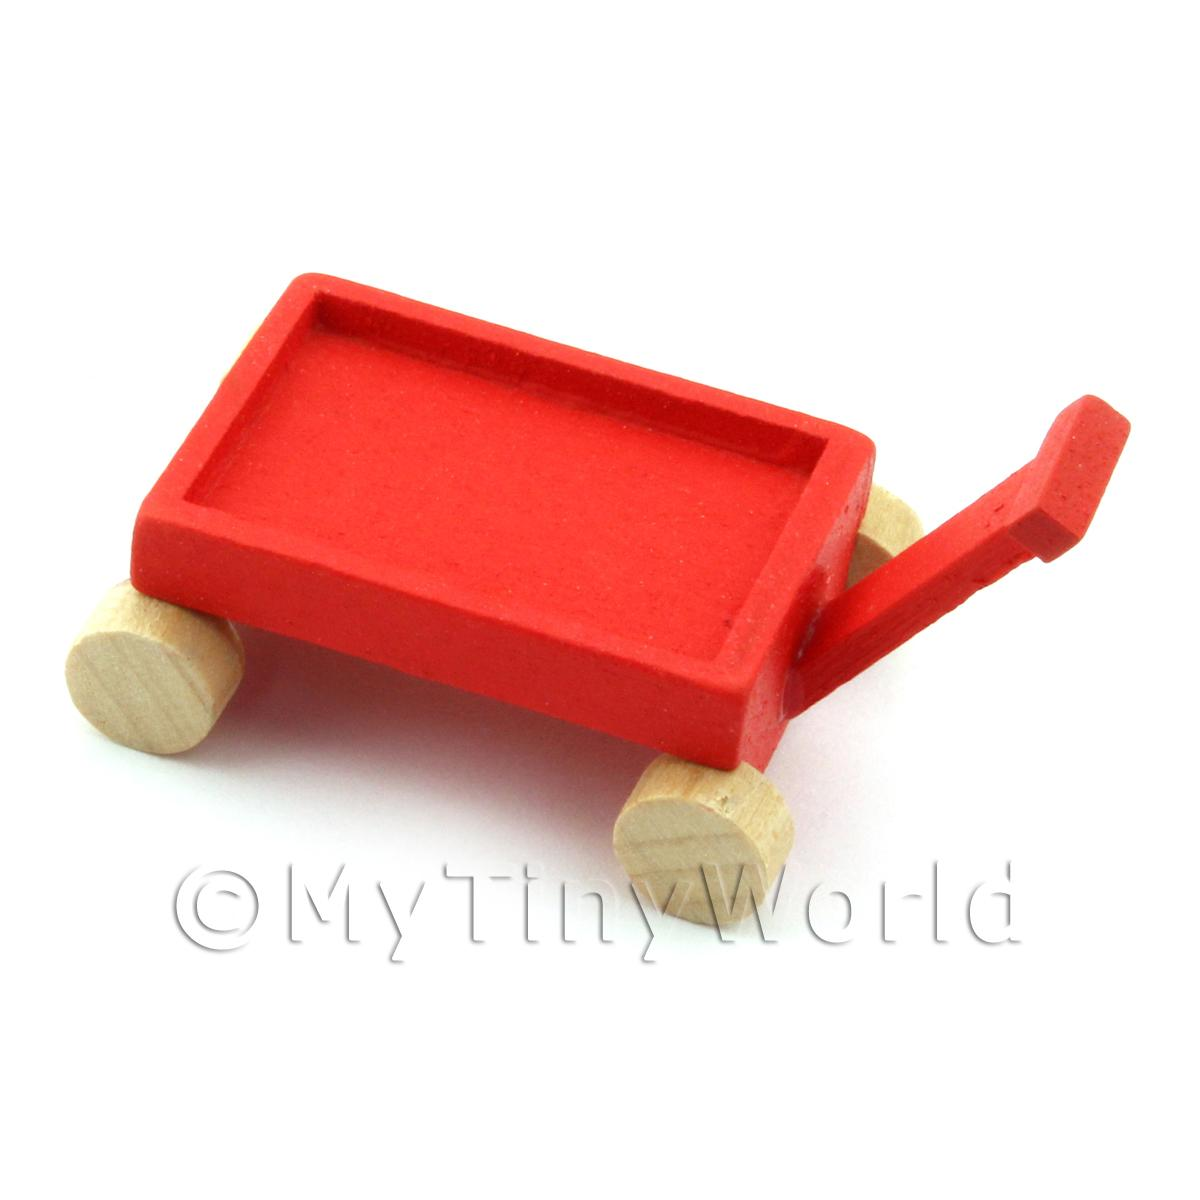 Dolls House Miniature Wooden Toy Trolley